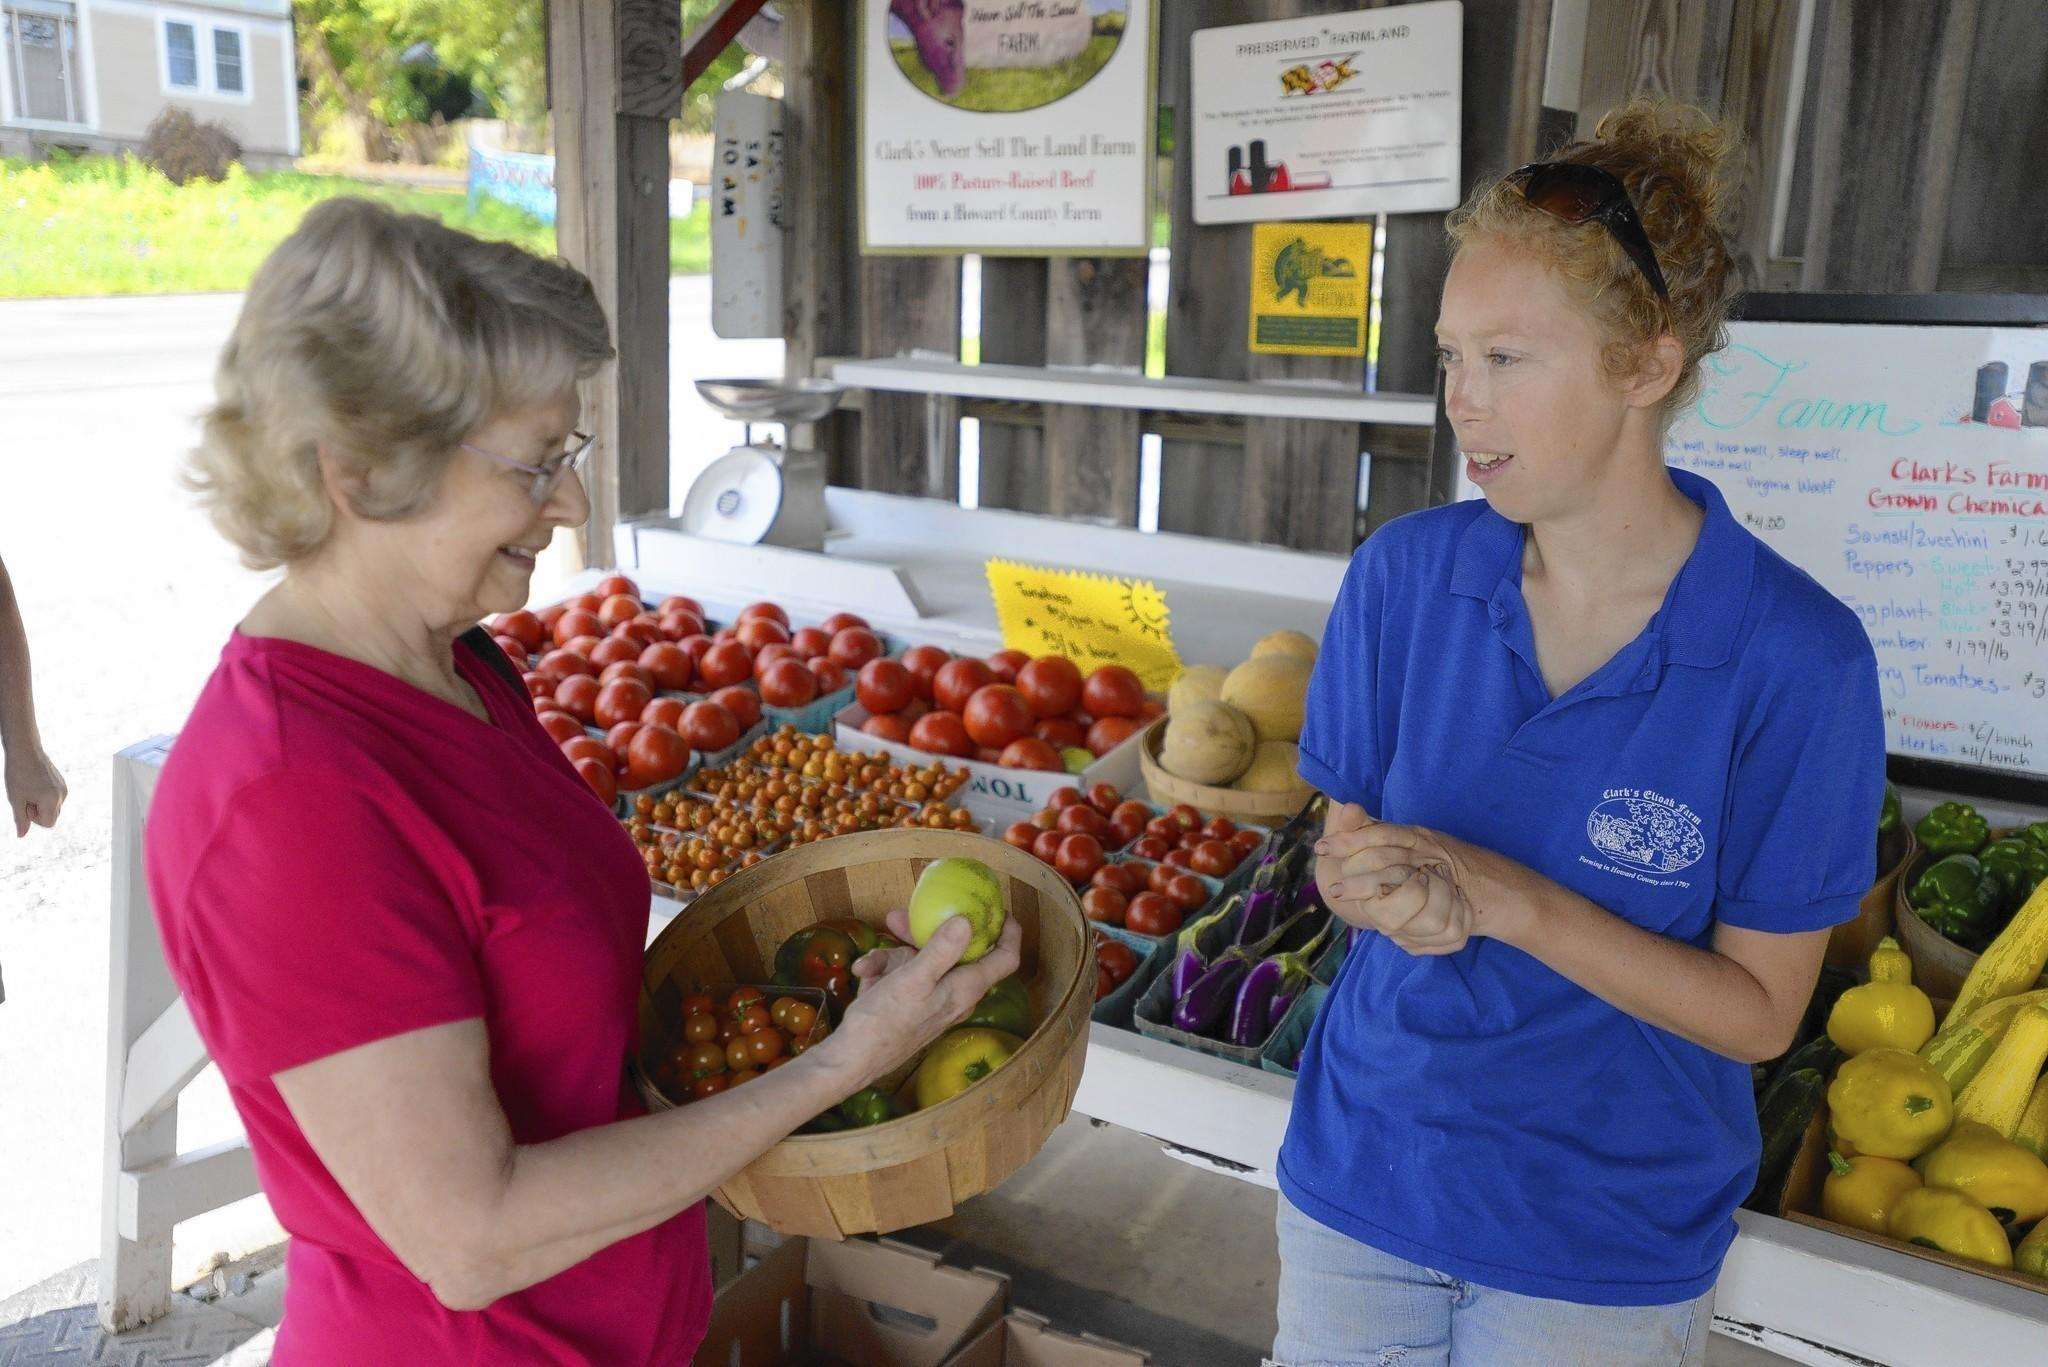 Small family farmer Nora Crist (right) talks with customer Barbara Wolfert of Columbia about her produce selection at Clark's Farm in Ellicott City. The Howard County Film Feastival is being held for the 5th year at Clarks Elioak Farm on Tuesday, July 22.